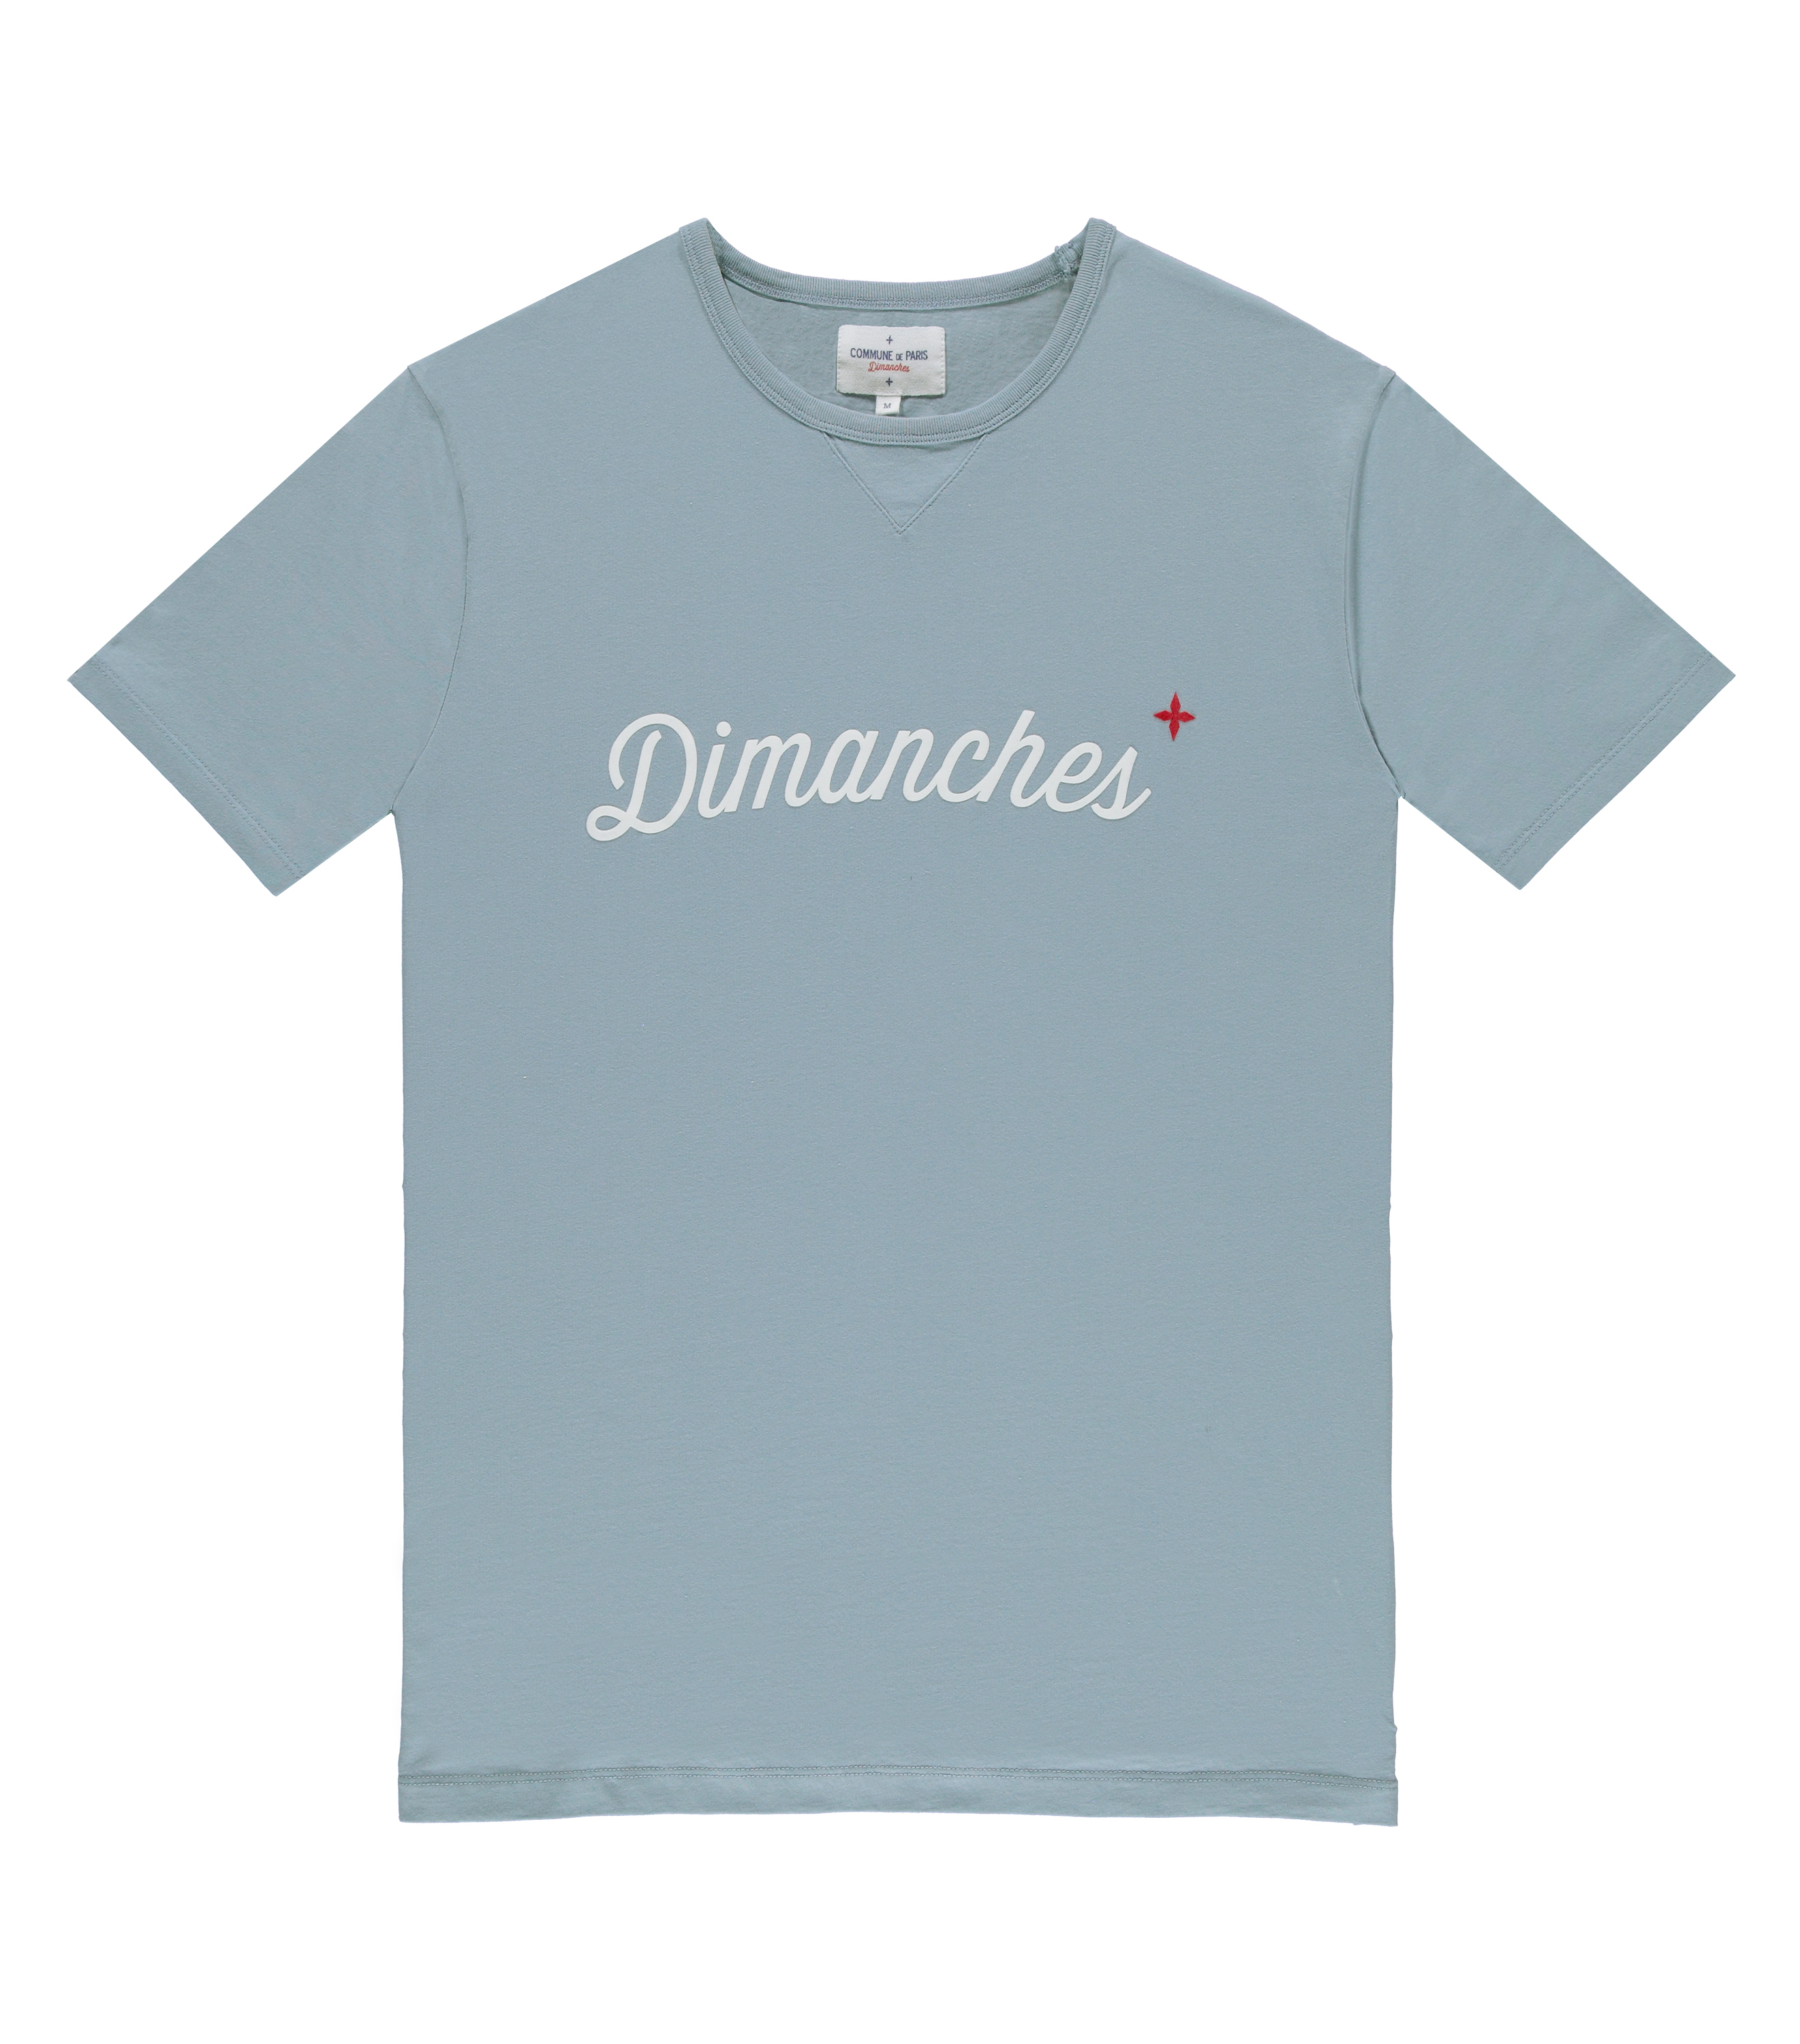 Tee Dimanches 03 - Blue